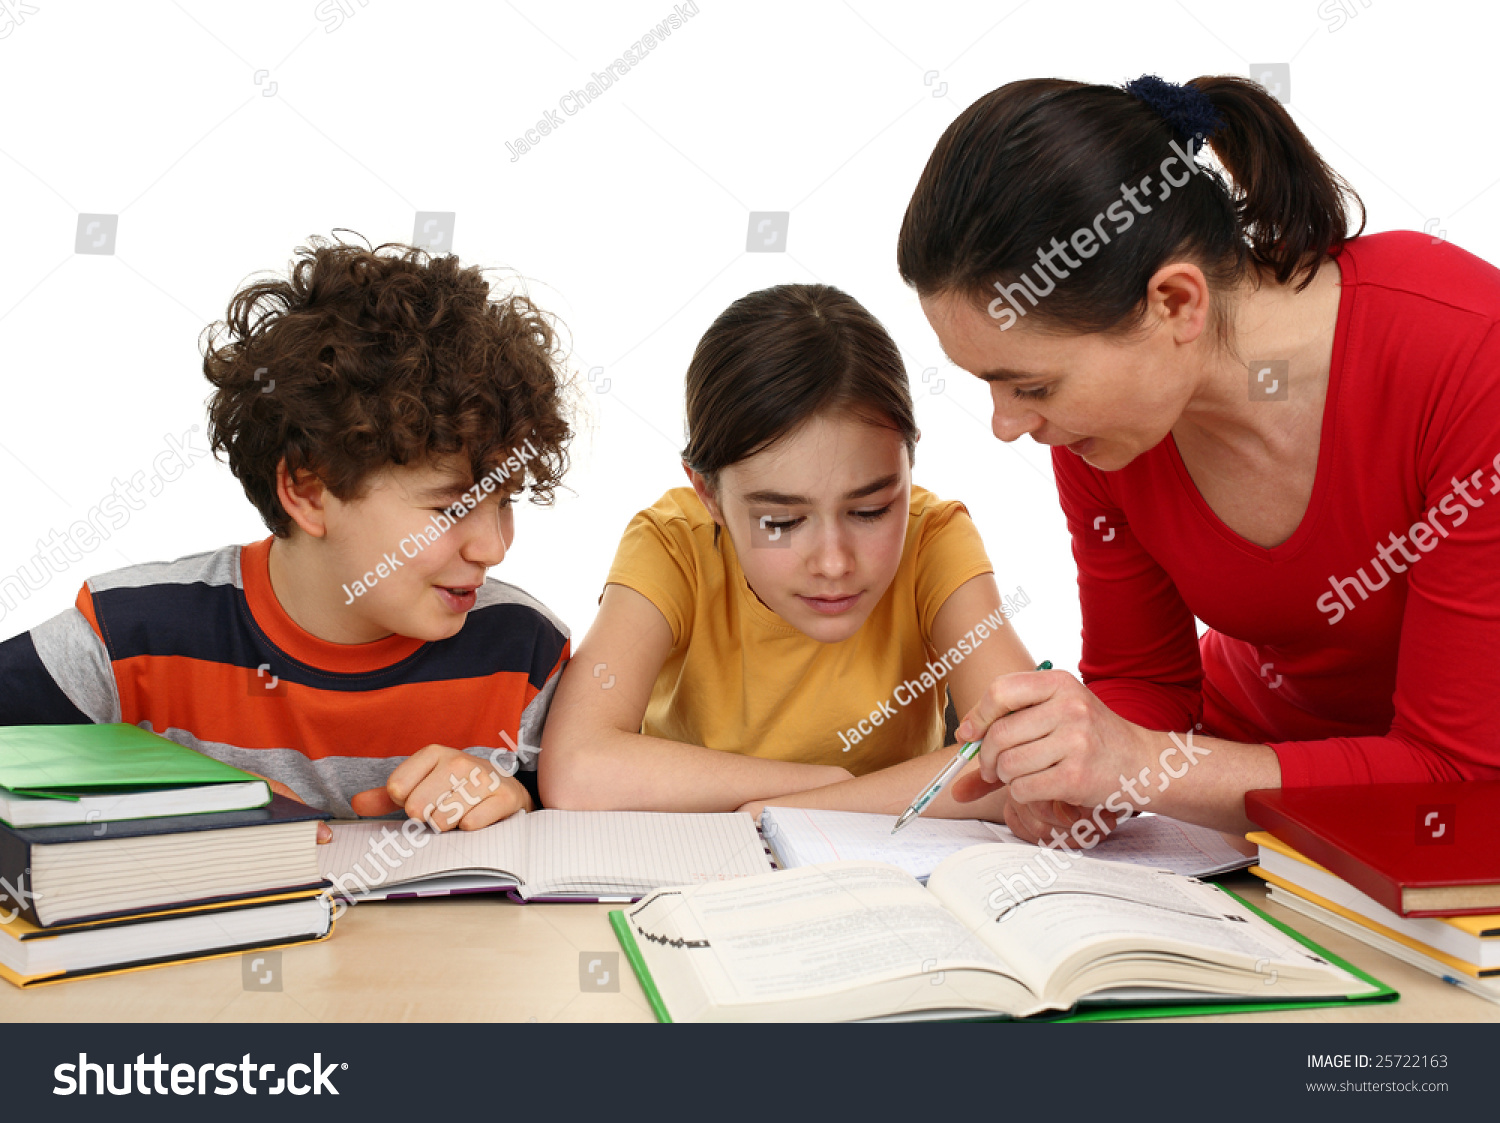 help me homework Do my homework or write my assignment - no matters - we can help you with any assignment online - order today and get your homework done expert writers are here to.